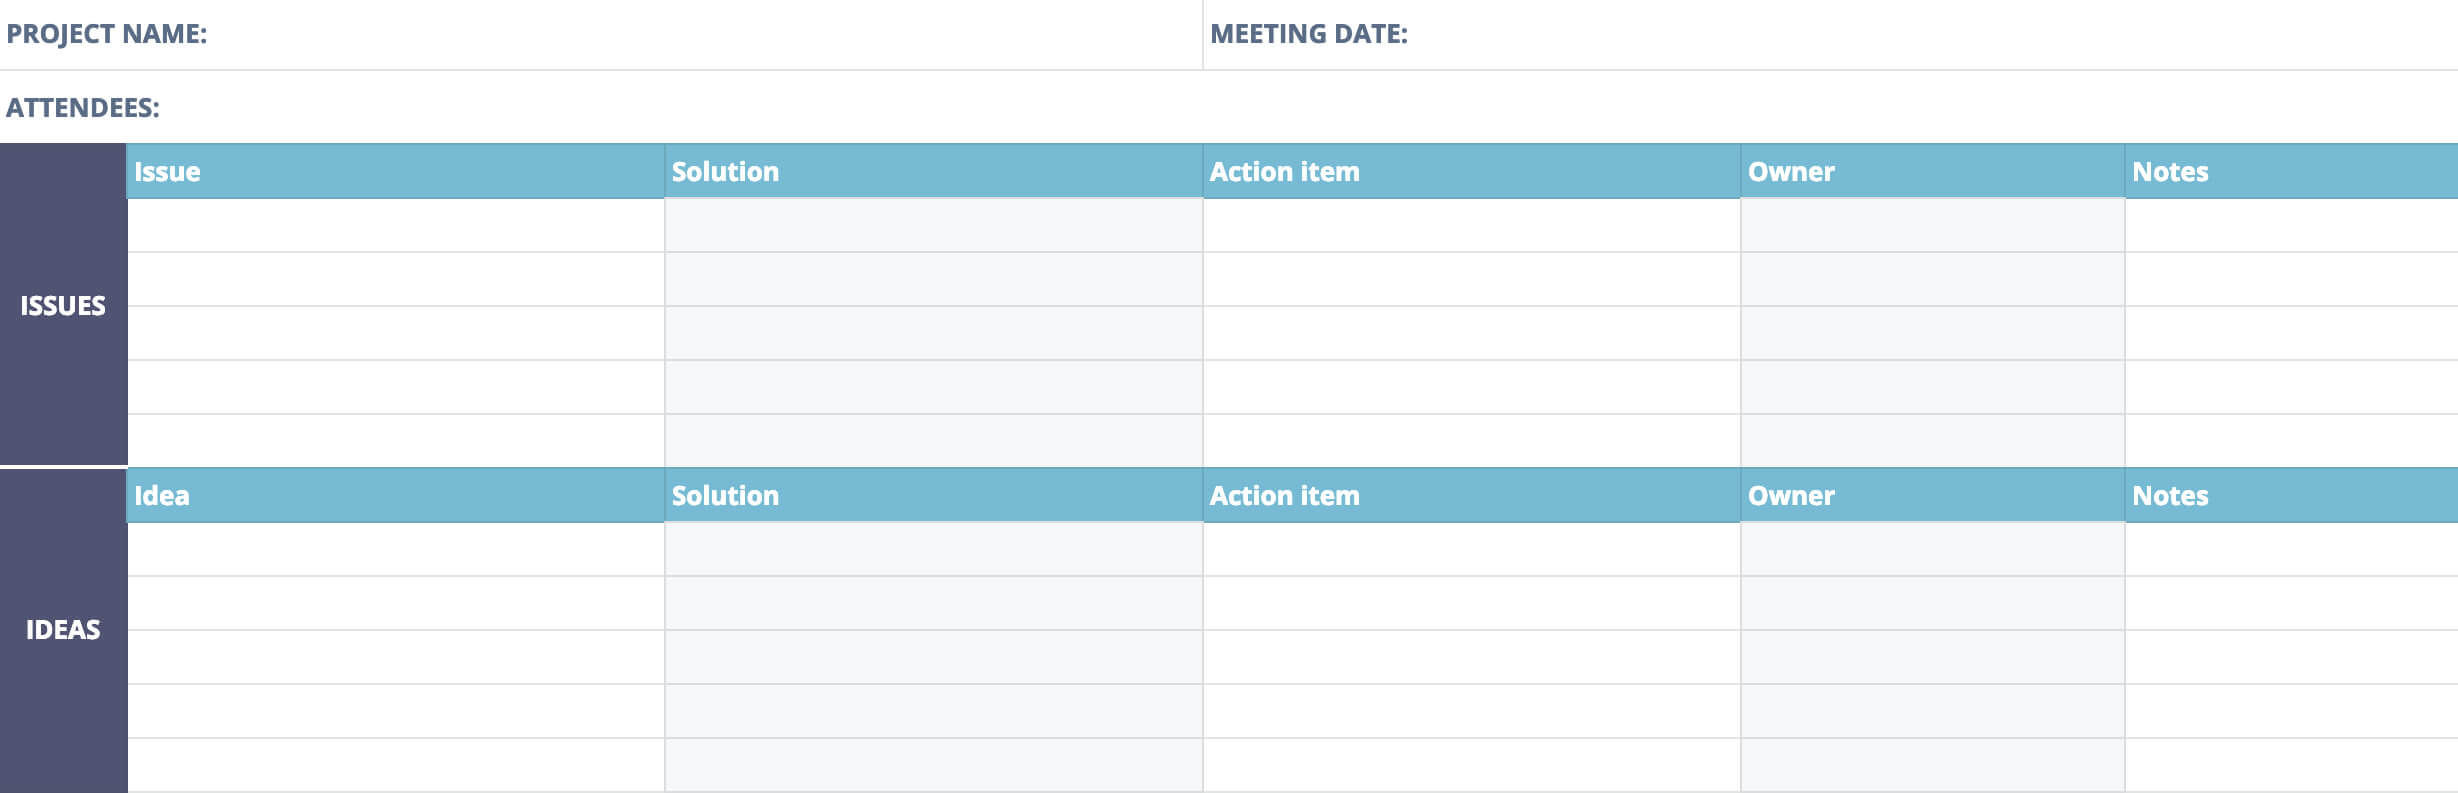 Post Mortem Meeting Template And Tips | Teamgantt Regarding Post Project Report Template